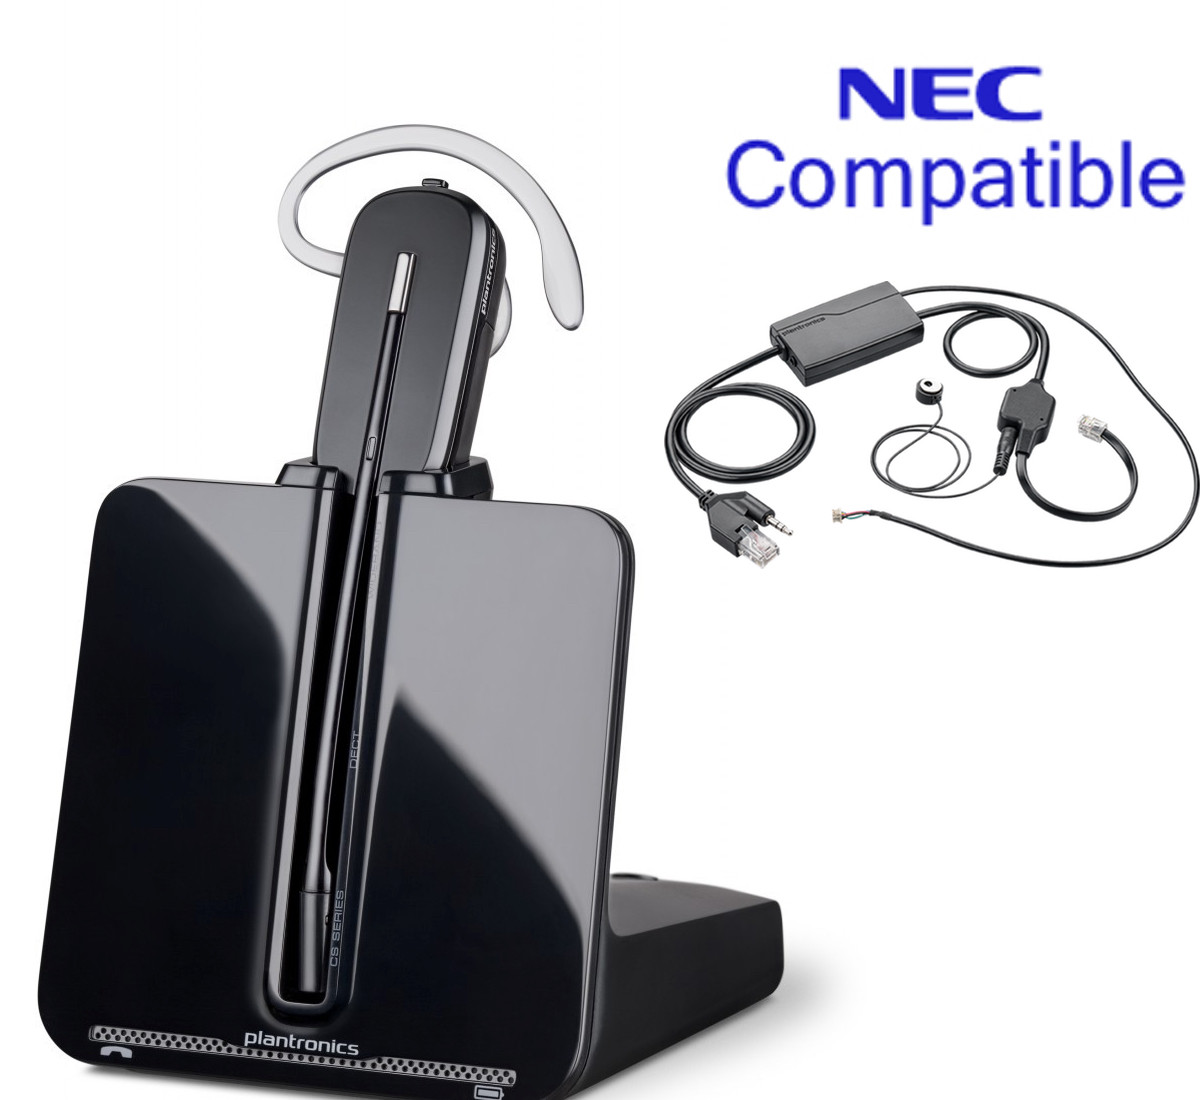 medium resolution of nec compatible plantronics cordless headset bundle cs540 ehs with electronic remote answerer nec phones